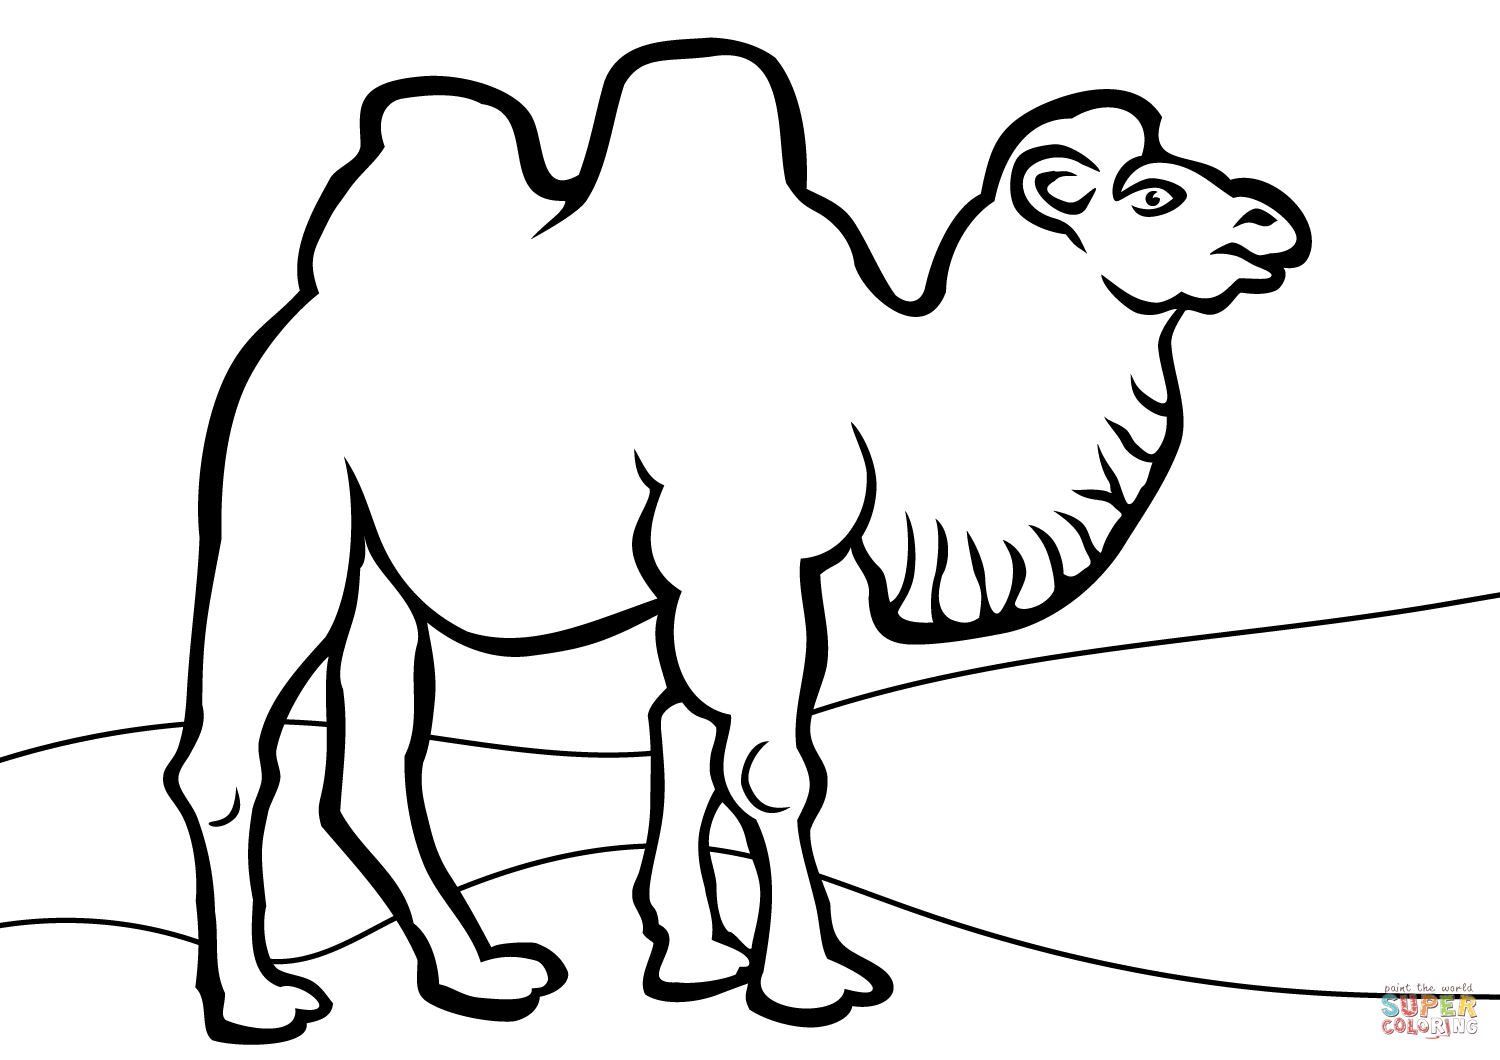 Camel clipart bactrian camel. Coloring page free printable